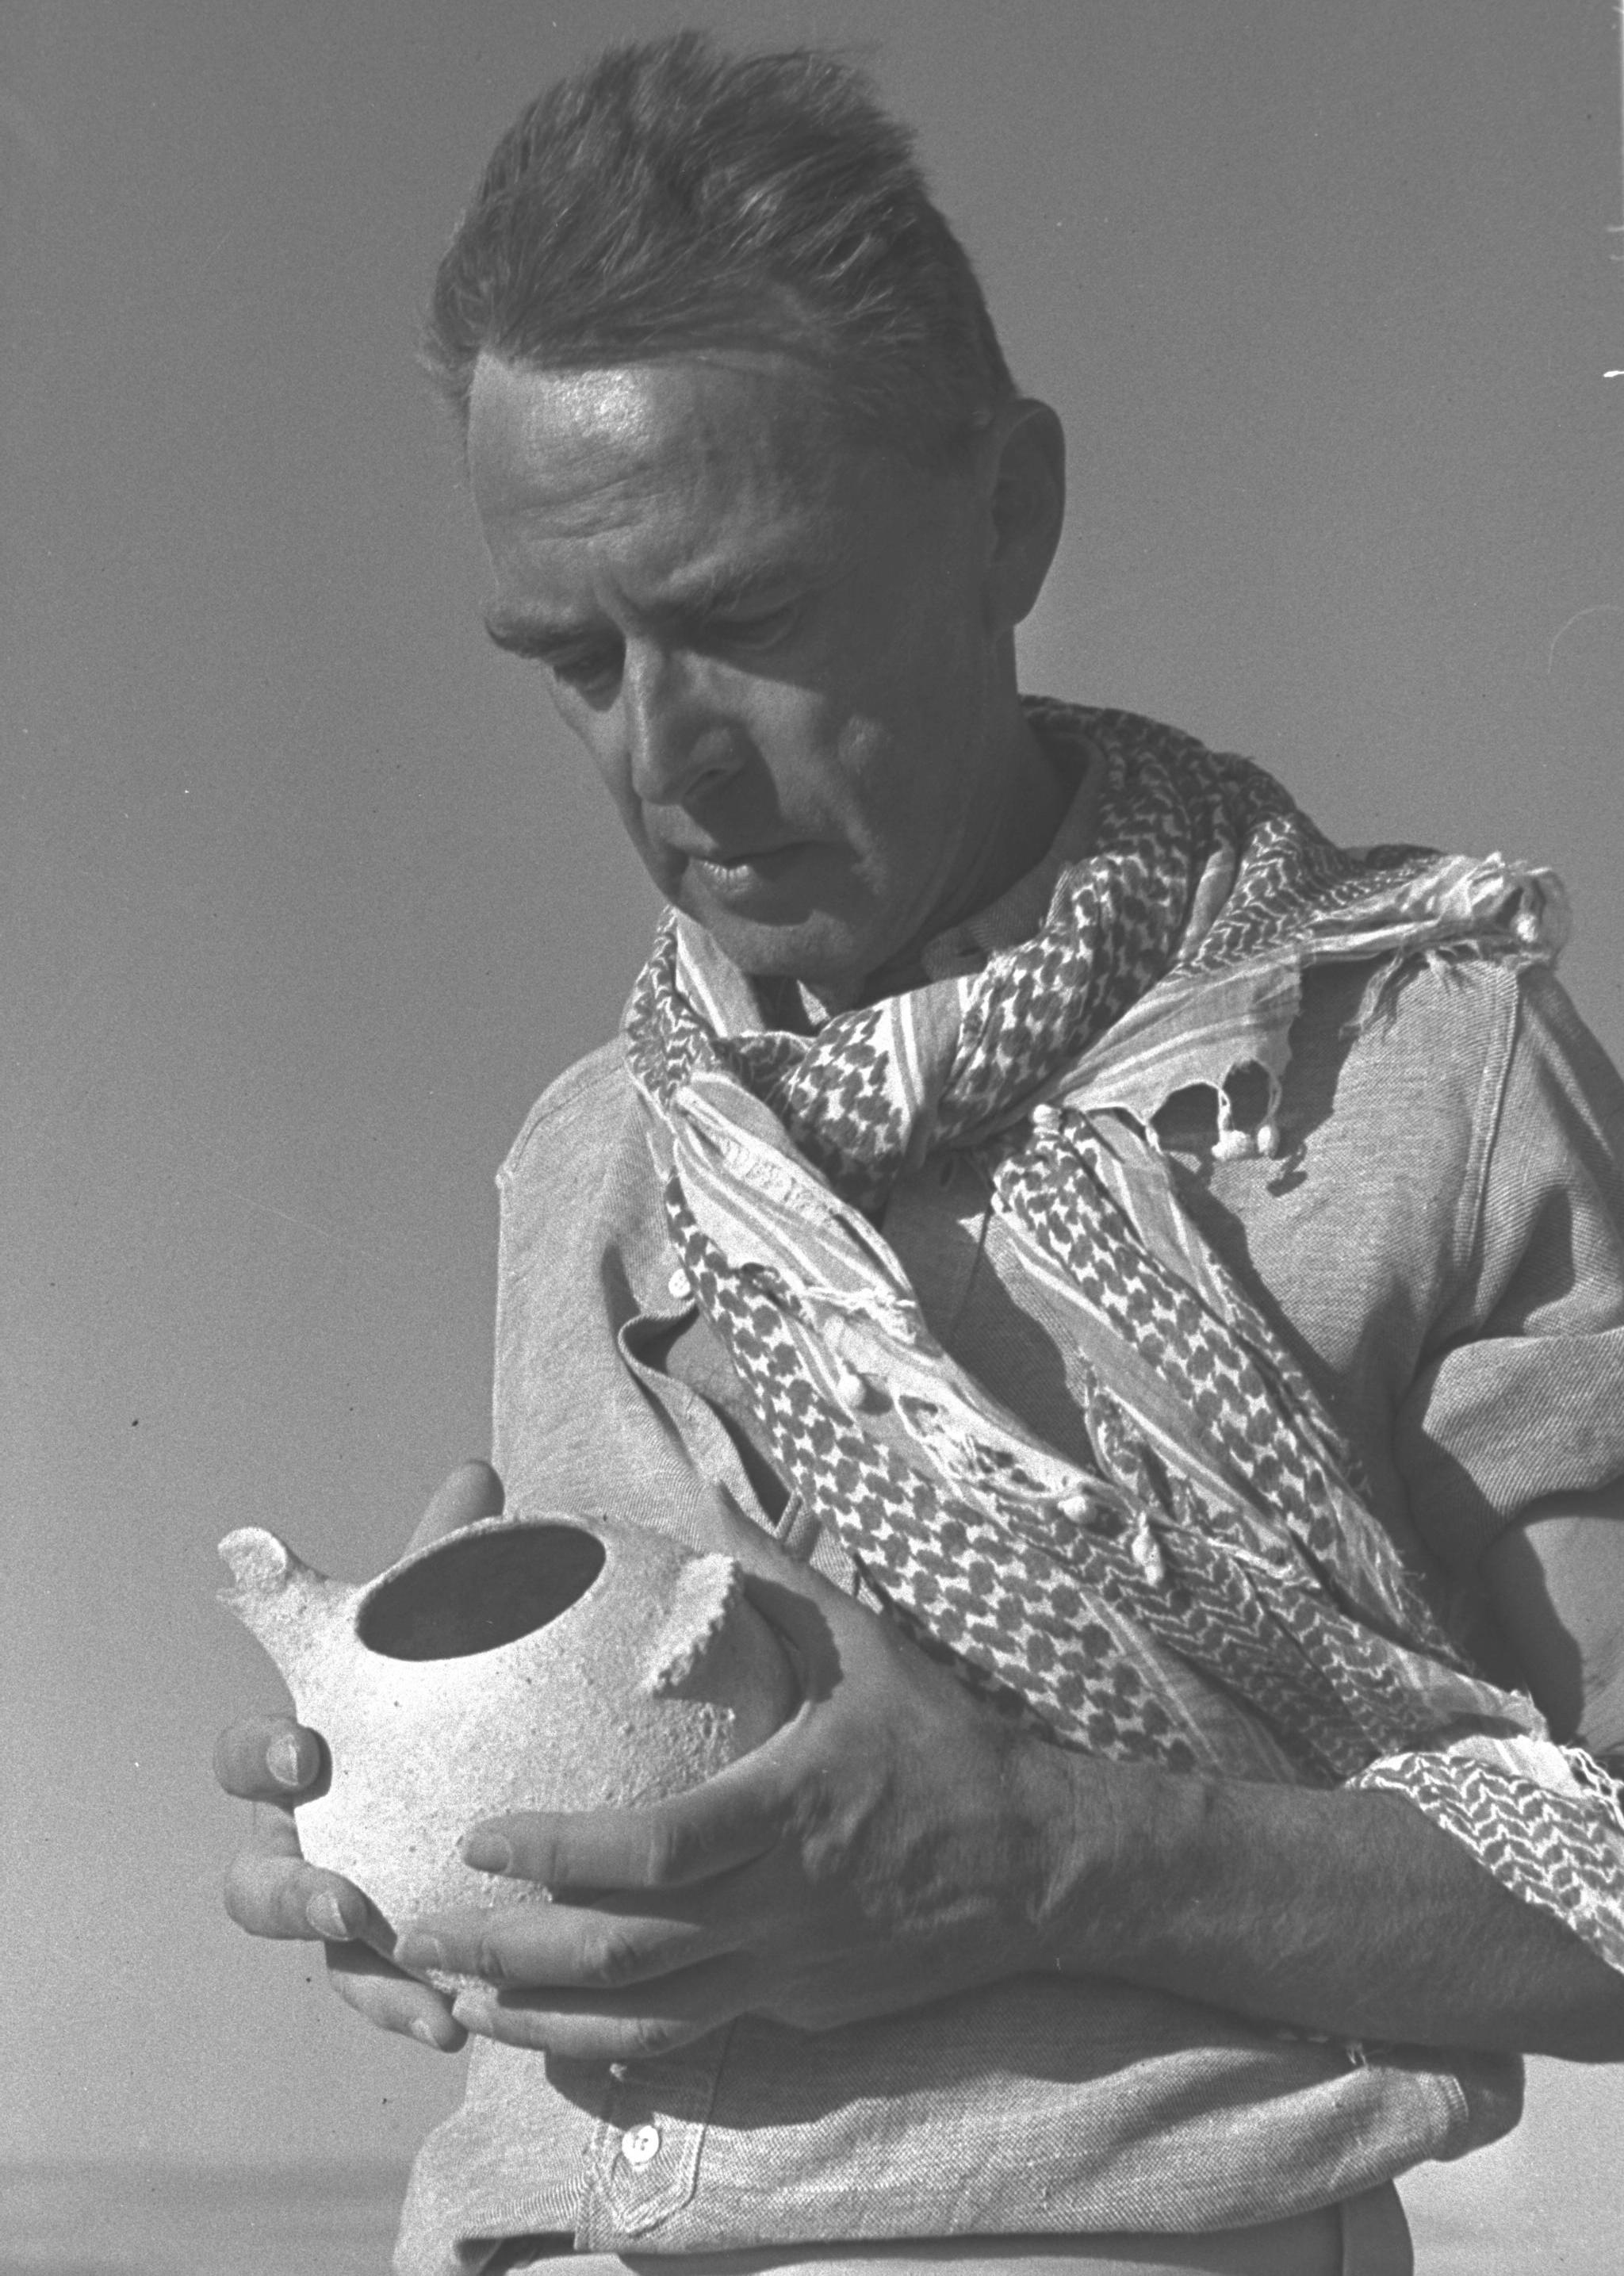 Archaeologist Prof. Nelson Glueck in Israel, 1956